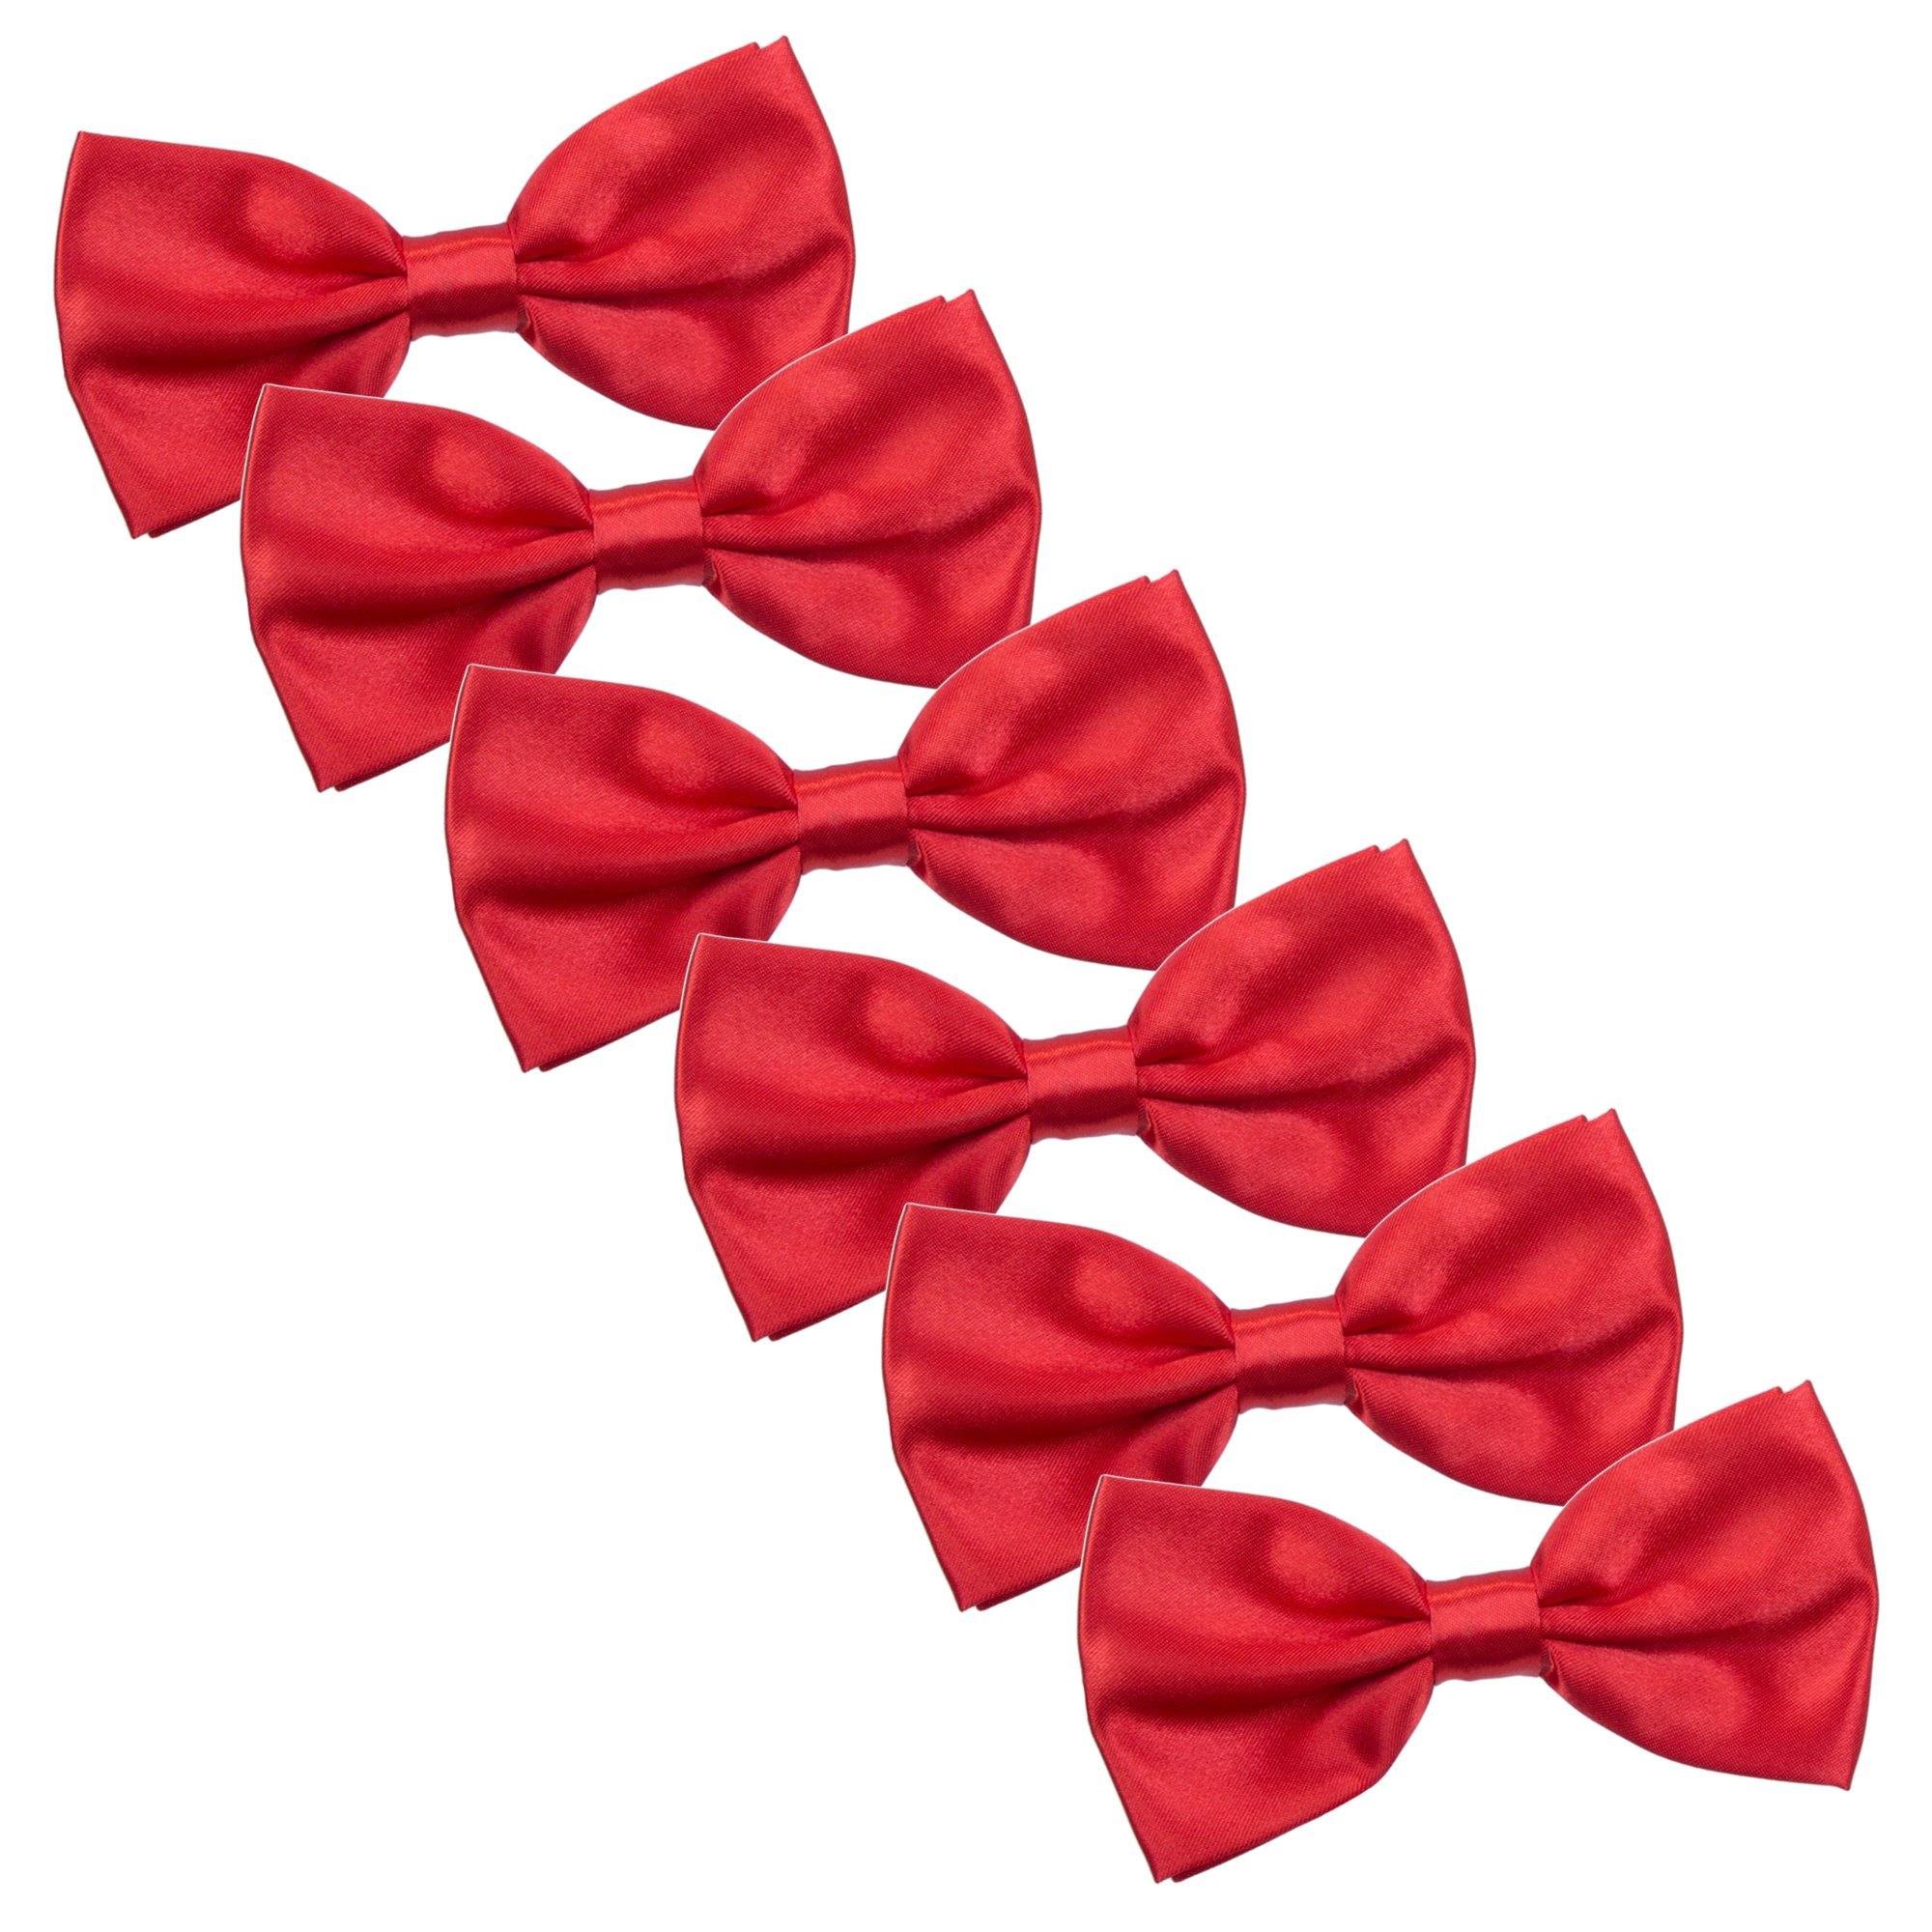 Men's Bow Tie for Wedding Party - 6 Pack of Solid Color Adjustable Pre Tied Bowties (Hot Red)